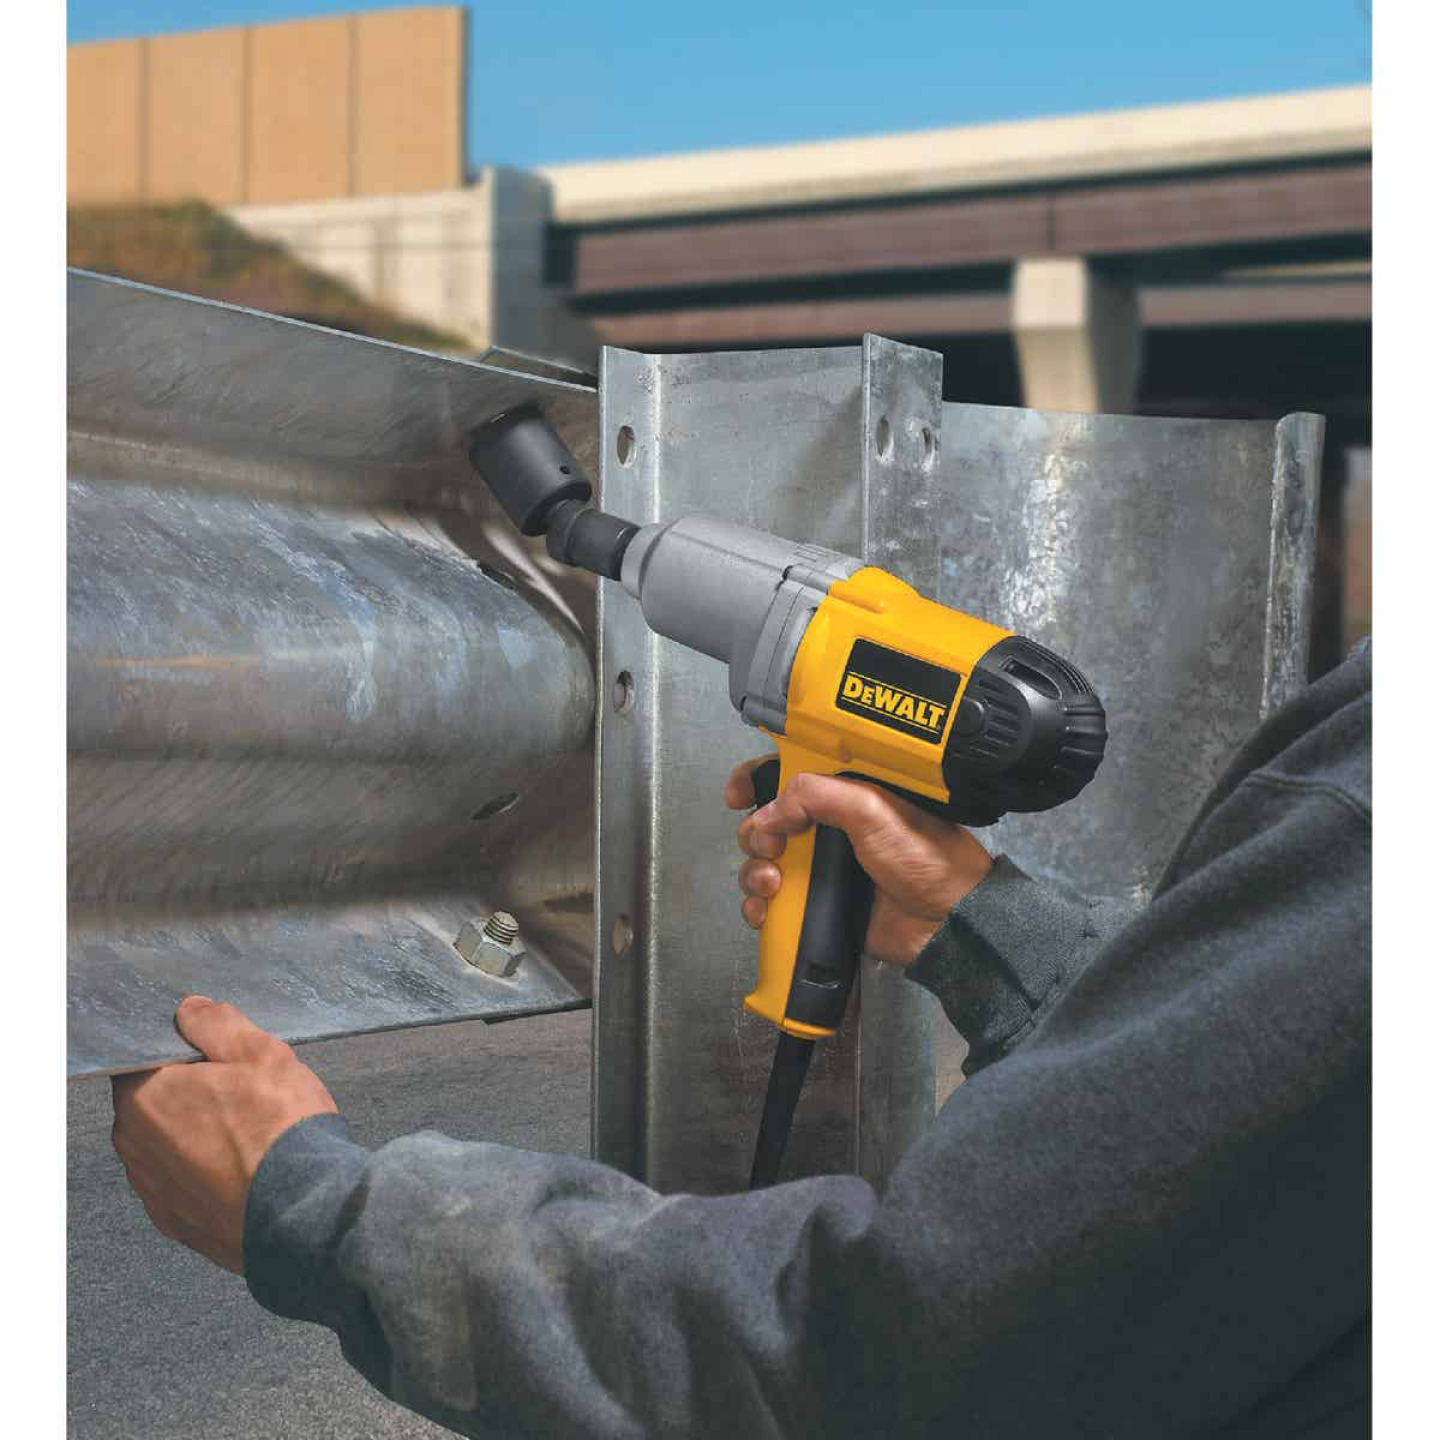 DeWalt 1/2 In. Impact Wrench with Detent Pin Anvil Image 5